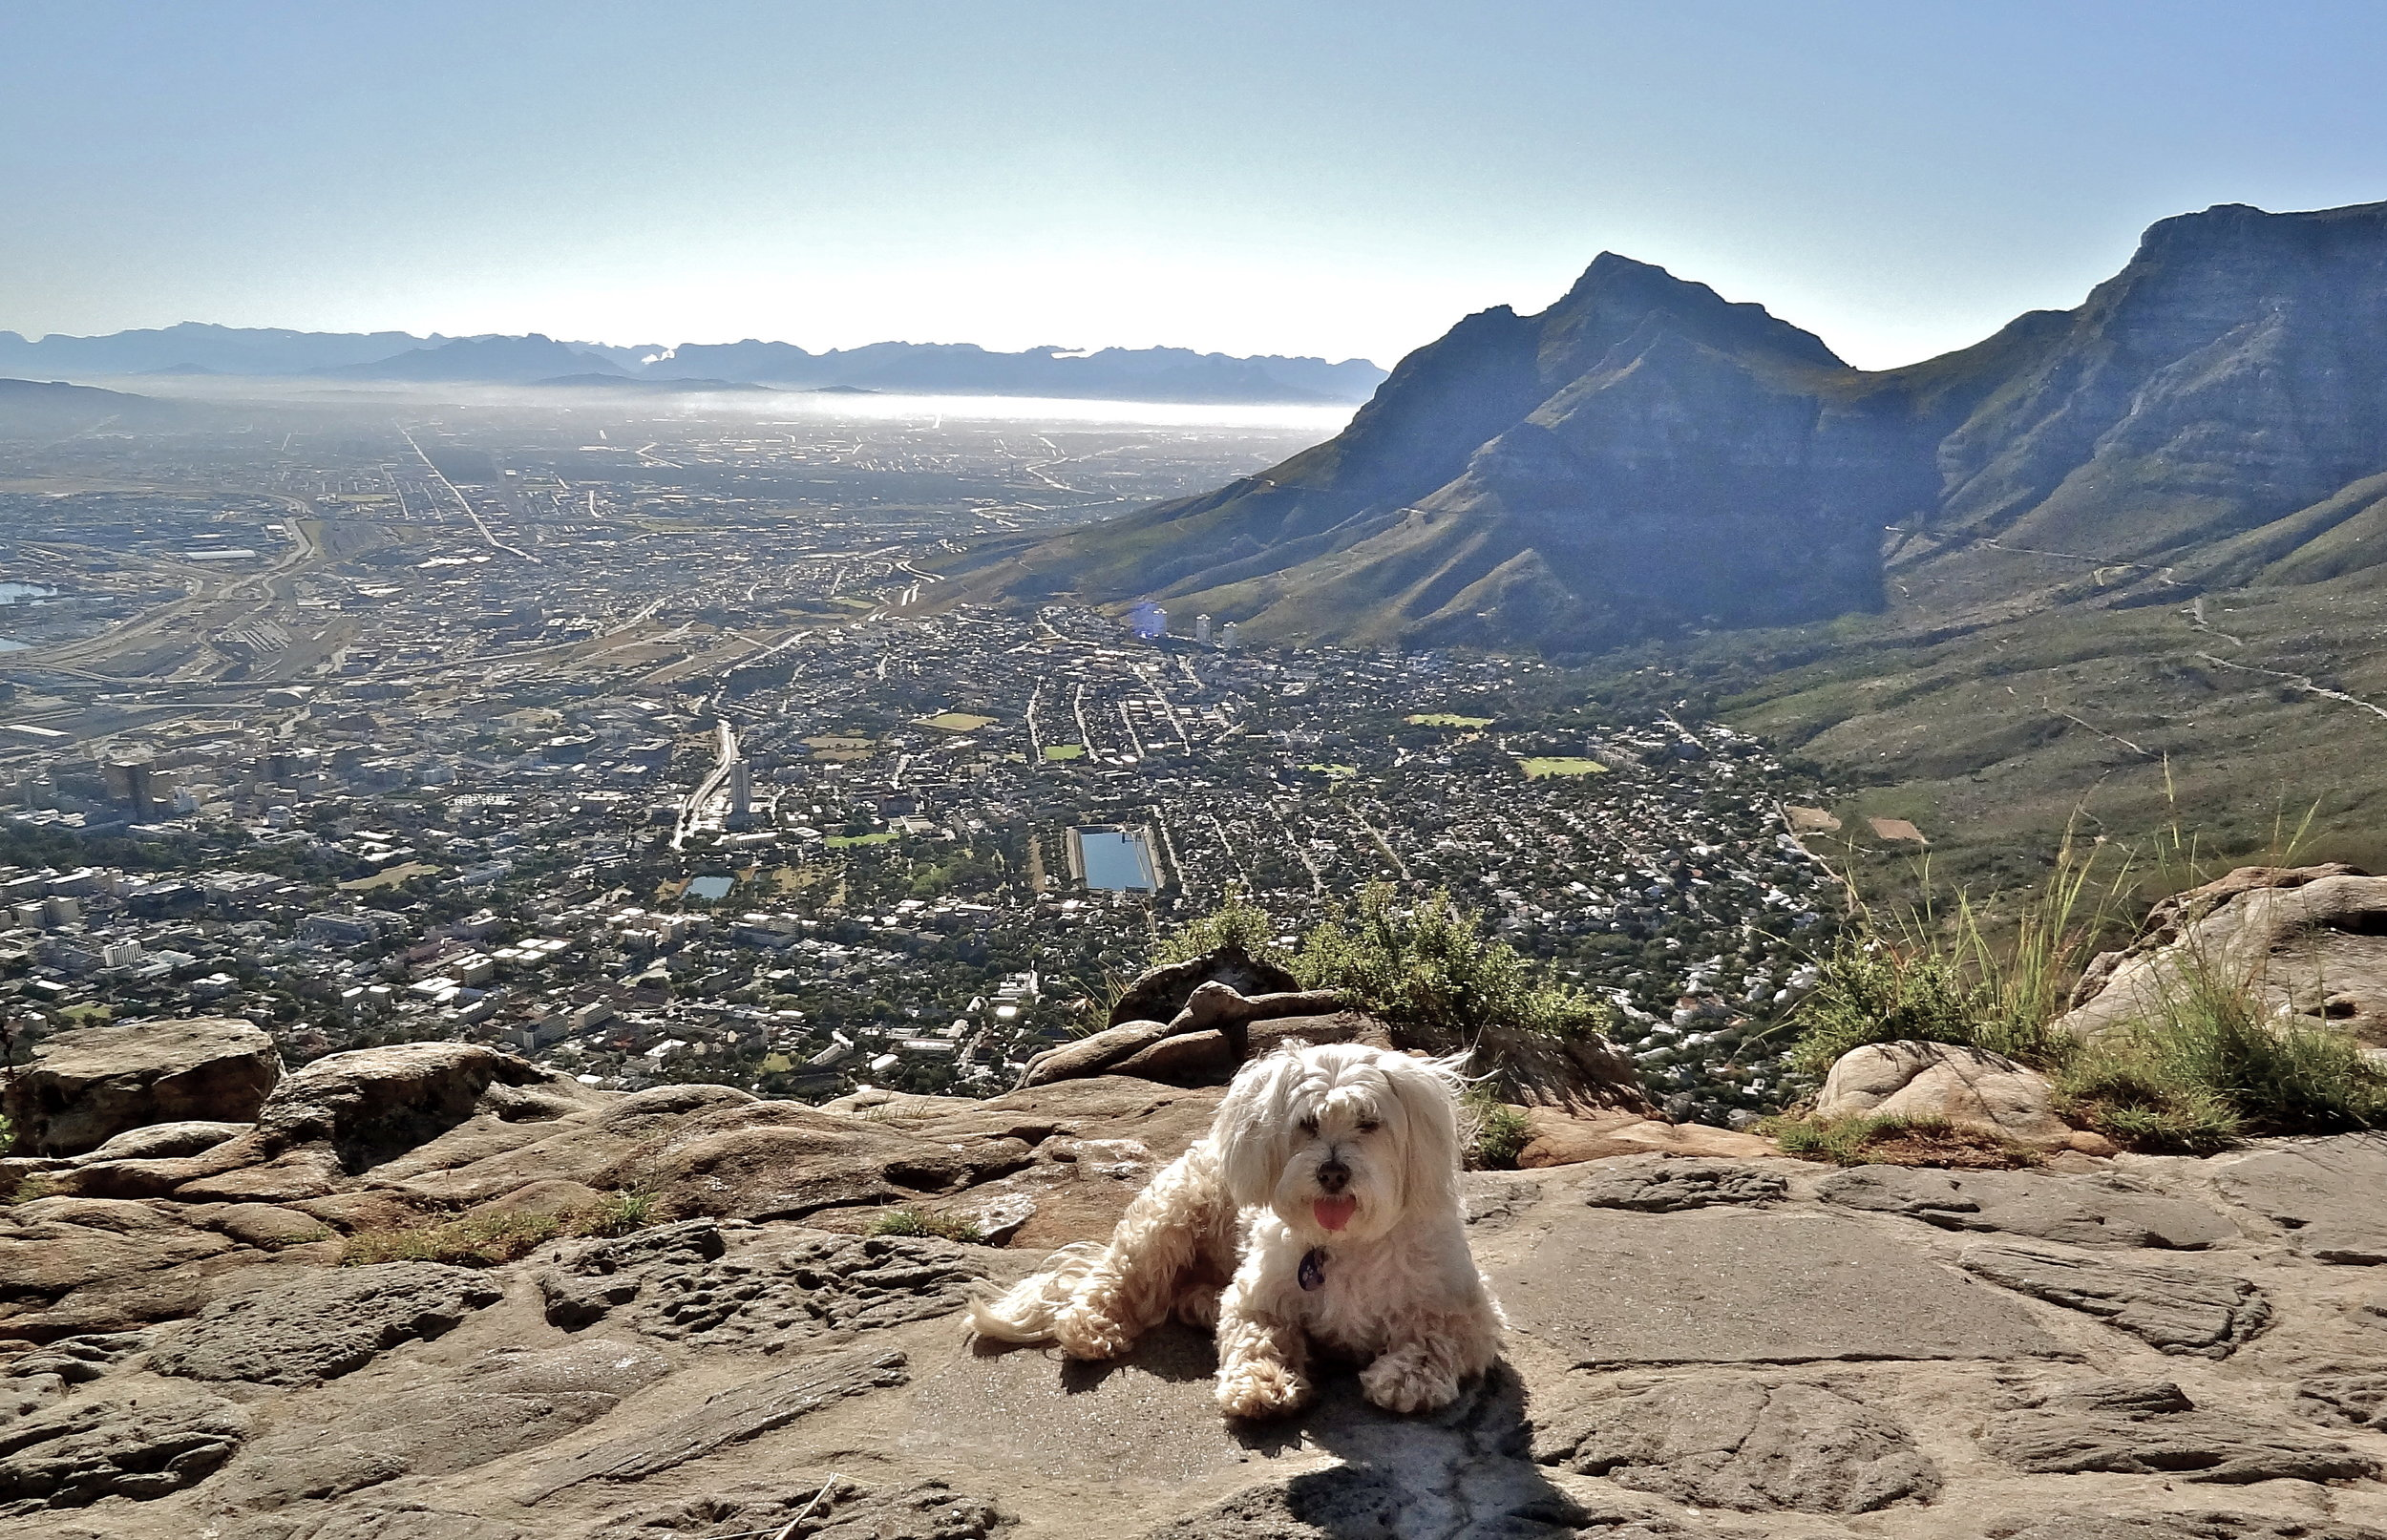 Lion's Head, South Africa. Spring 2012.